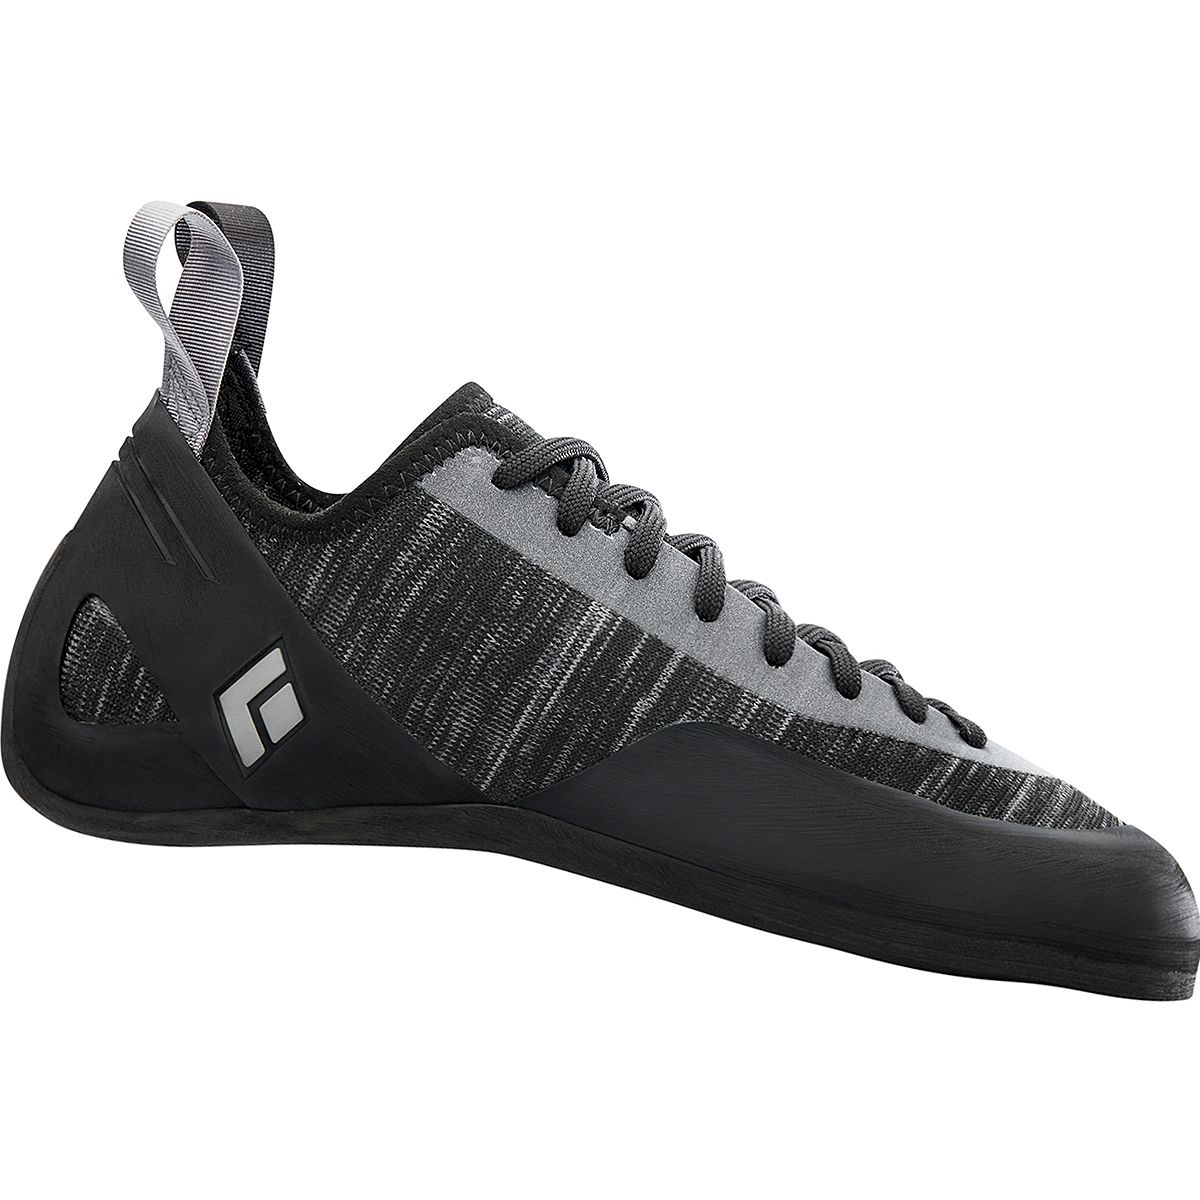 Black Diamond Momentum Lace Climbing Shoes